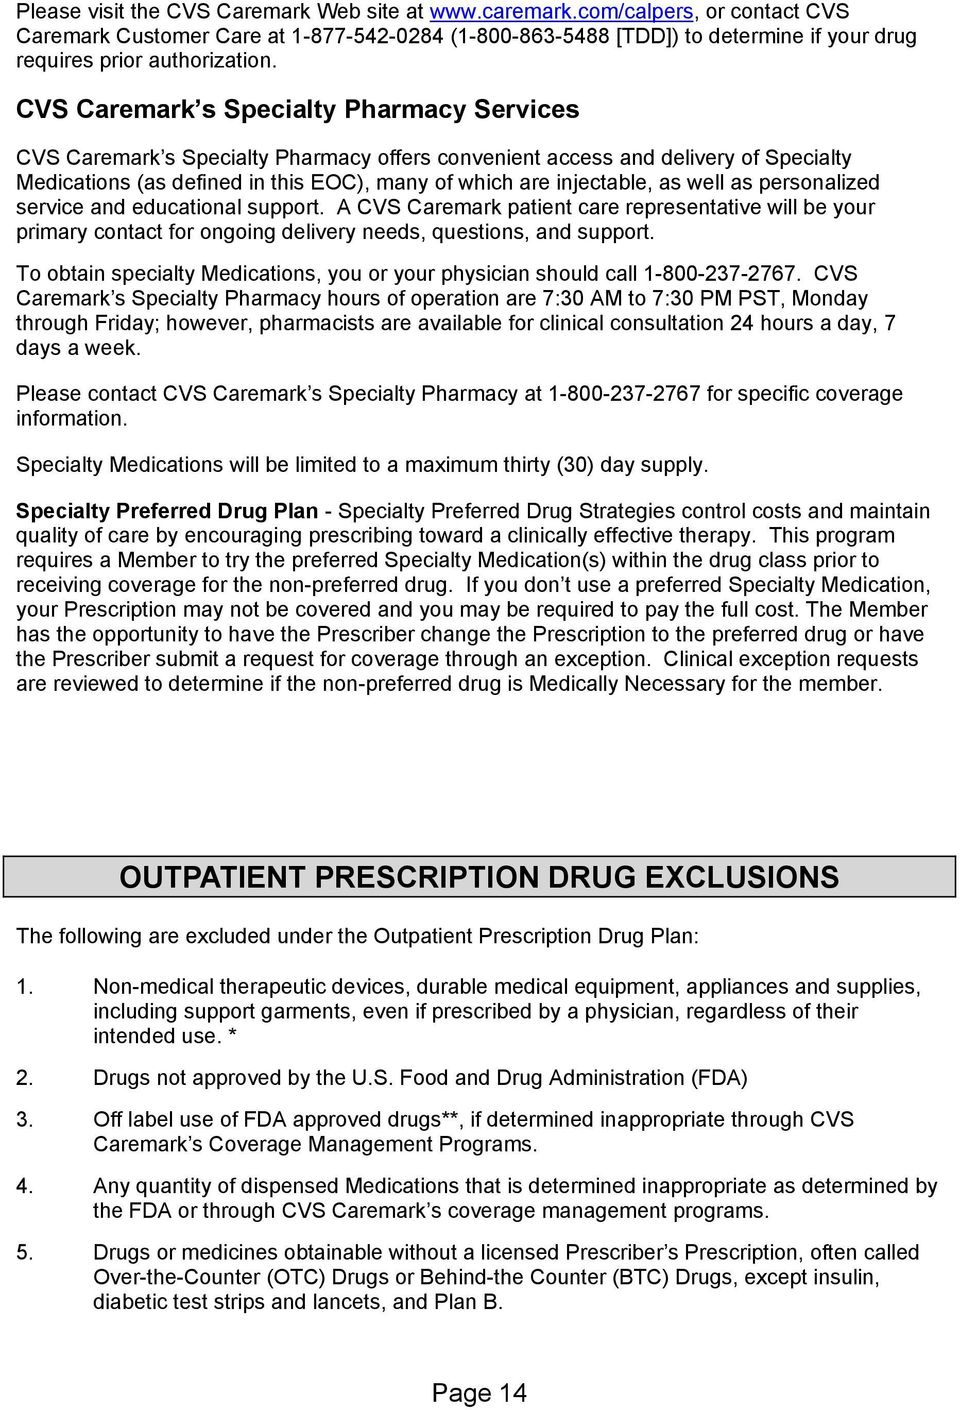 CVS Caremark s Specialty Pharmacy Services CVS Caremark s Specialty Pharmacy offers convenient access and delivery of Specialty Medications (as defined in this EOC), many of which are injectable, as